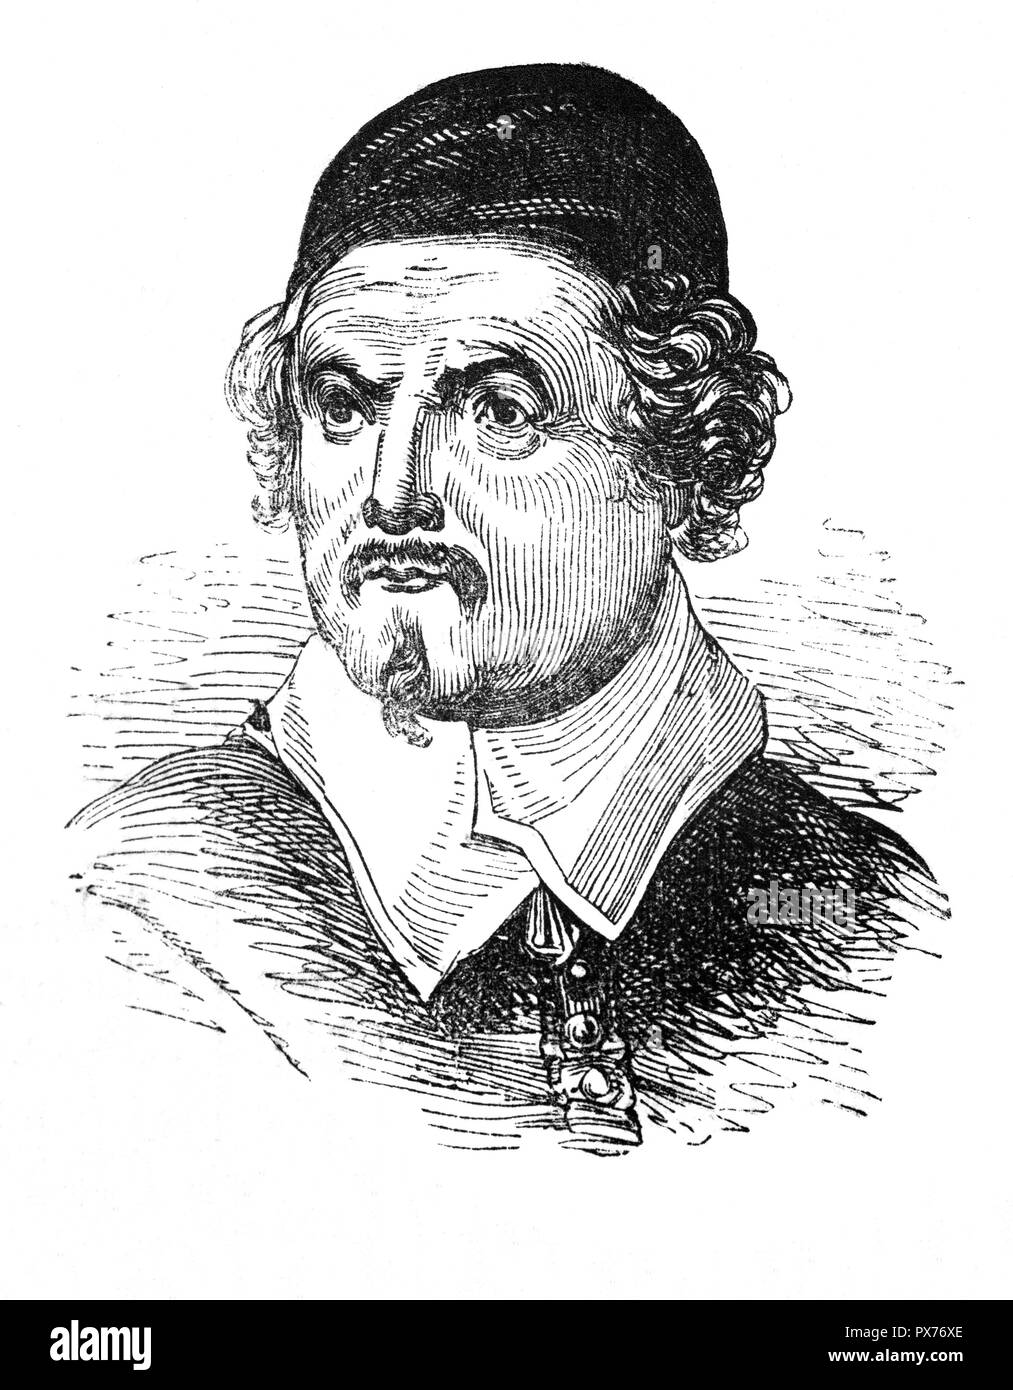 John Taylor (1578-1653), born in Gloucester, was an English poet who dubbed himself 'The Water Poet' having spent much of his life as a Thames waterman, a member of the guild of boatmen that ferried passengers across the River Thames in Londons. Fancying himself as a poet, in 1630 he published a collection of over 150 poems. None of the poems are very good, but reveal of the life and times of people in the early modern period. He was well-enough known to gain the support of King Charles 1 when he campaigned against the pollution and hindrances to navigation of some of England's rivers. - Stock Image